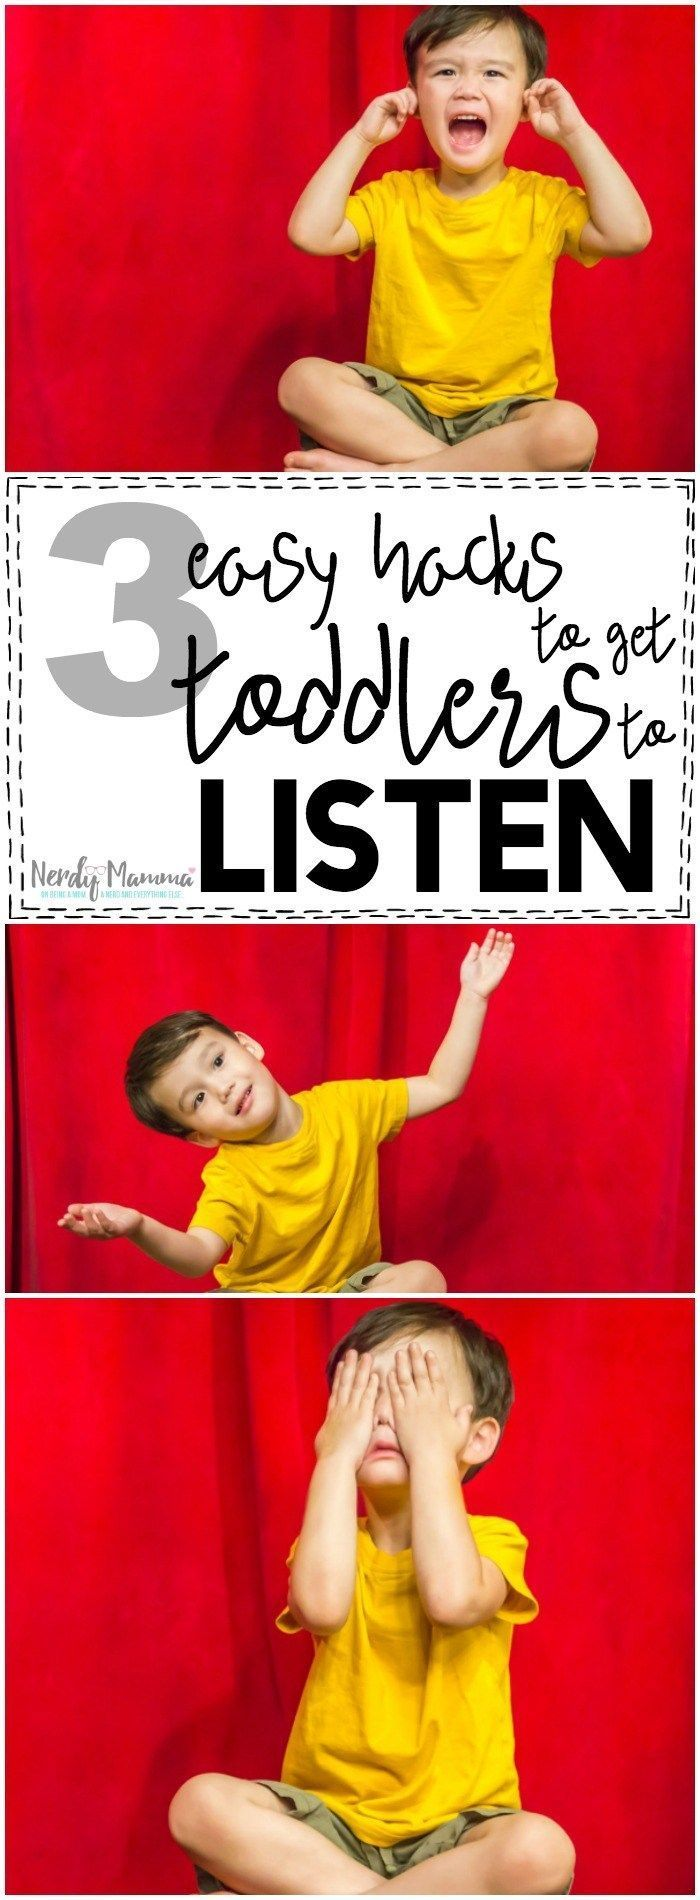 Oh, man, this mom's 3 easy tricks for getting toddlers to listen...genius!